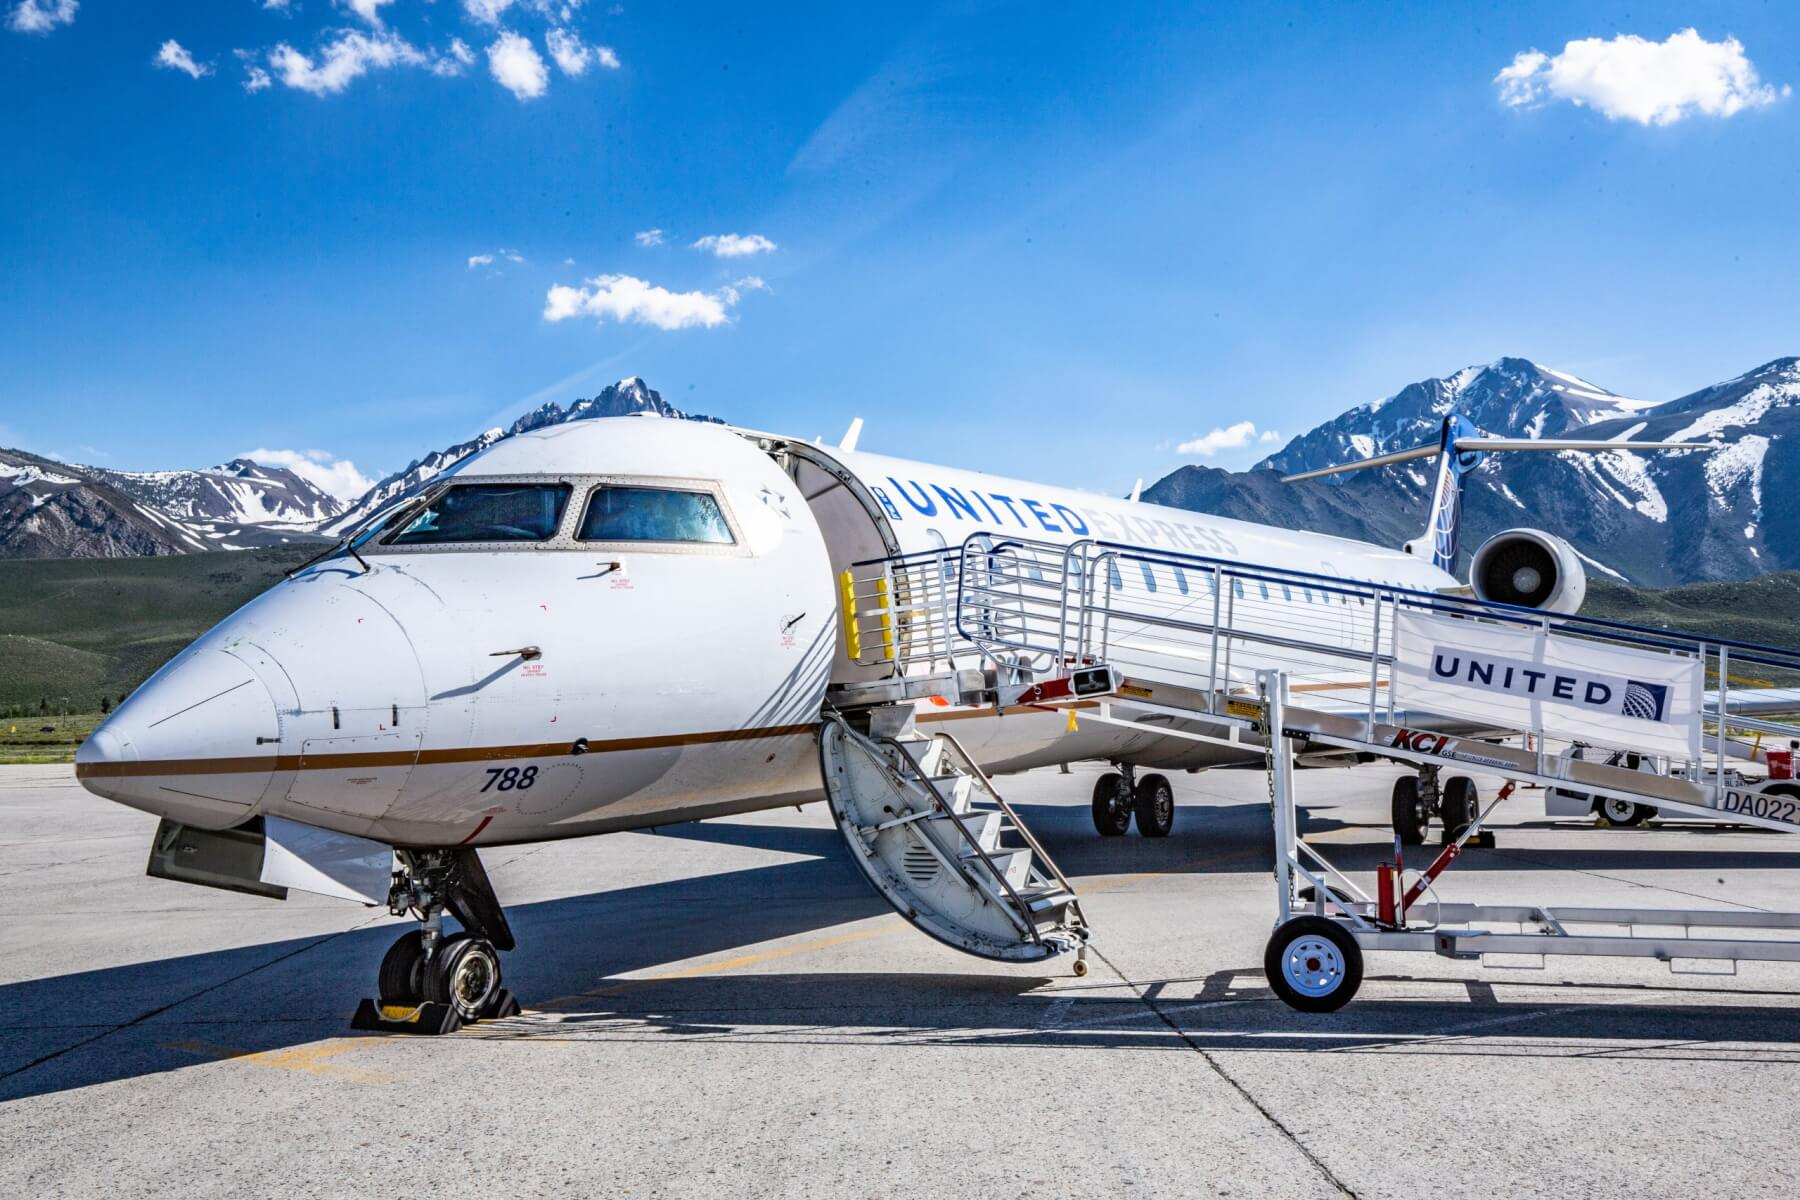 Flights to Mammoth Lakes on United